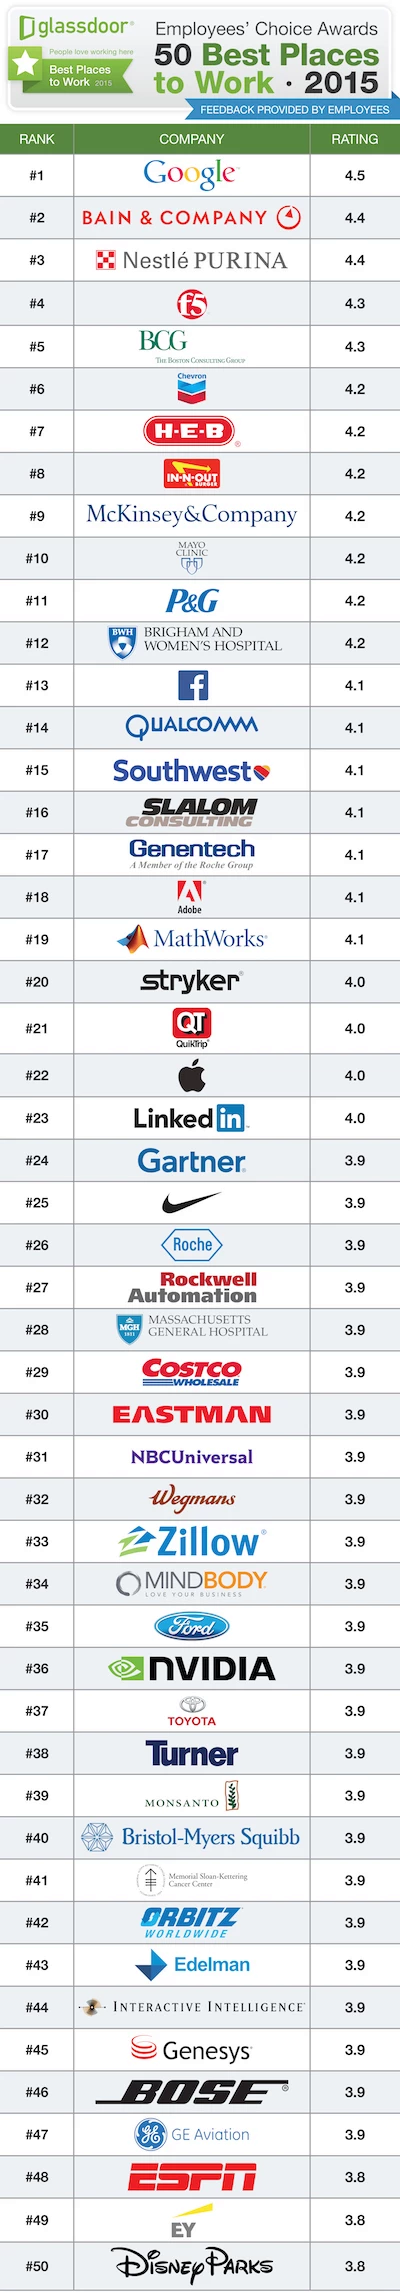 Glassdoor 50 Best Places To Work 2015